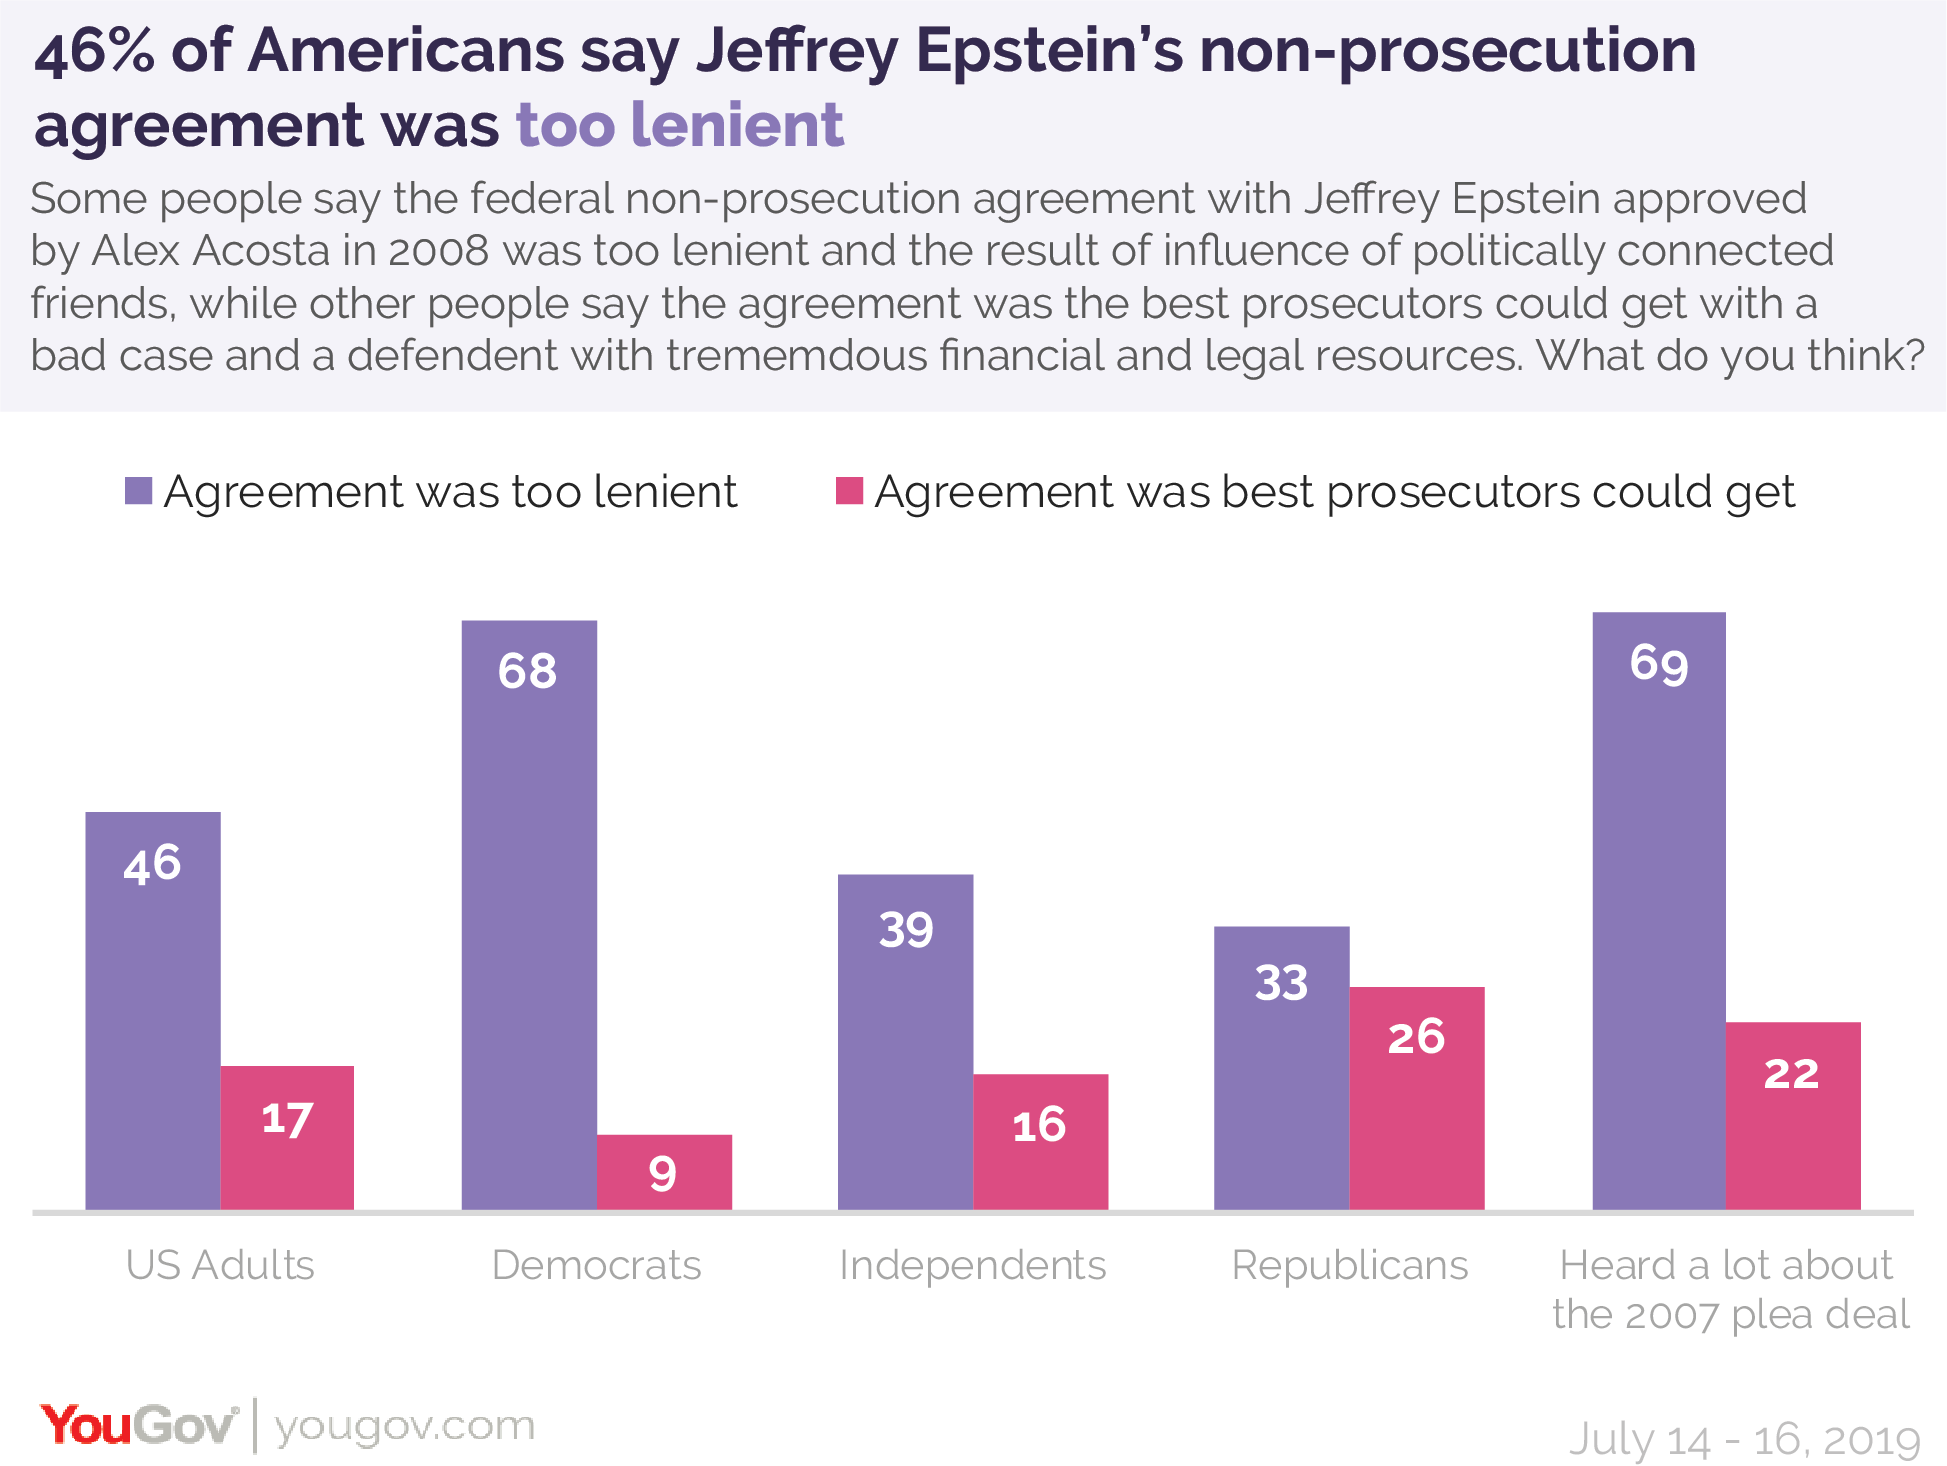 46% of Americans say Jeffrey Epstein's non-prosecution agreement was too lenient